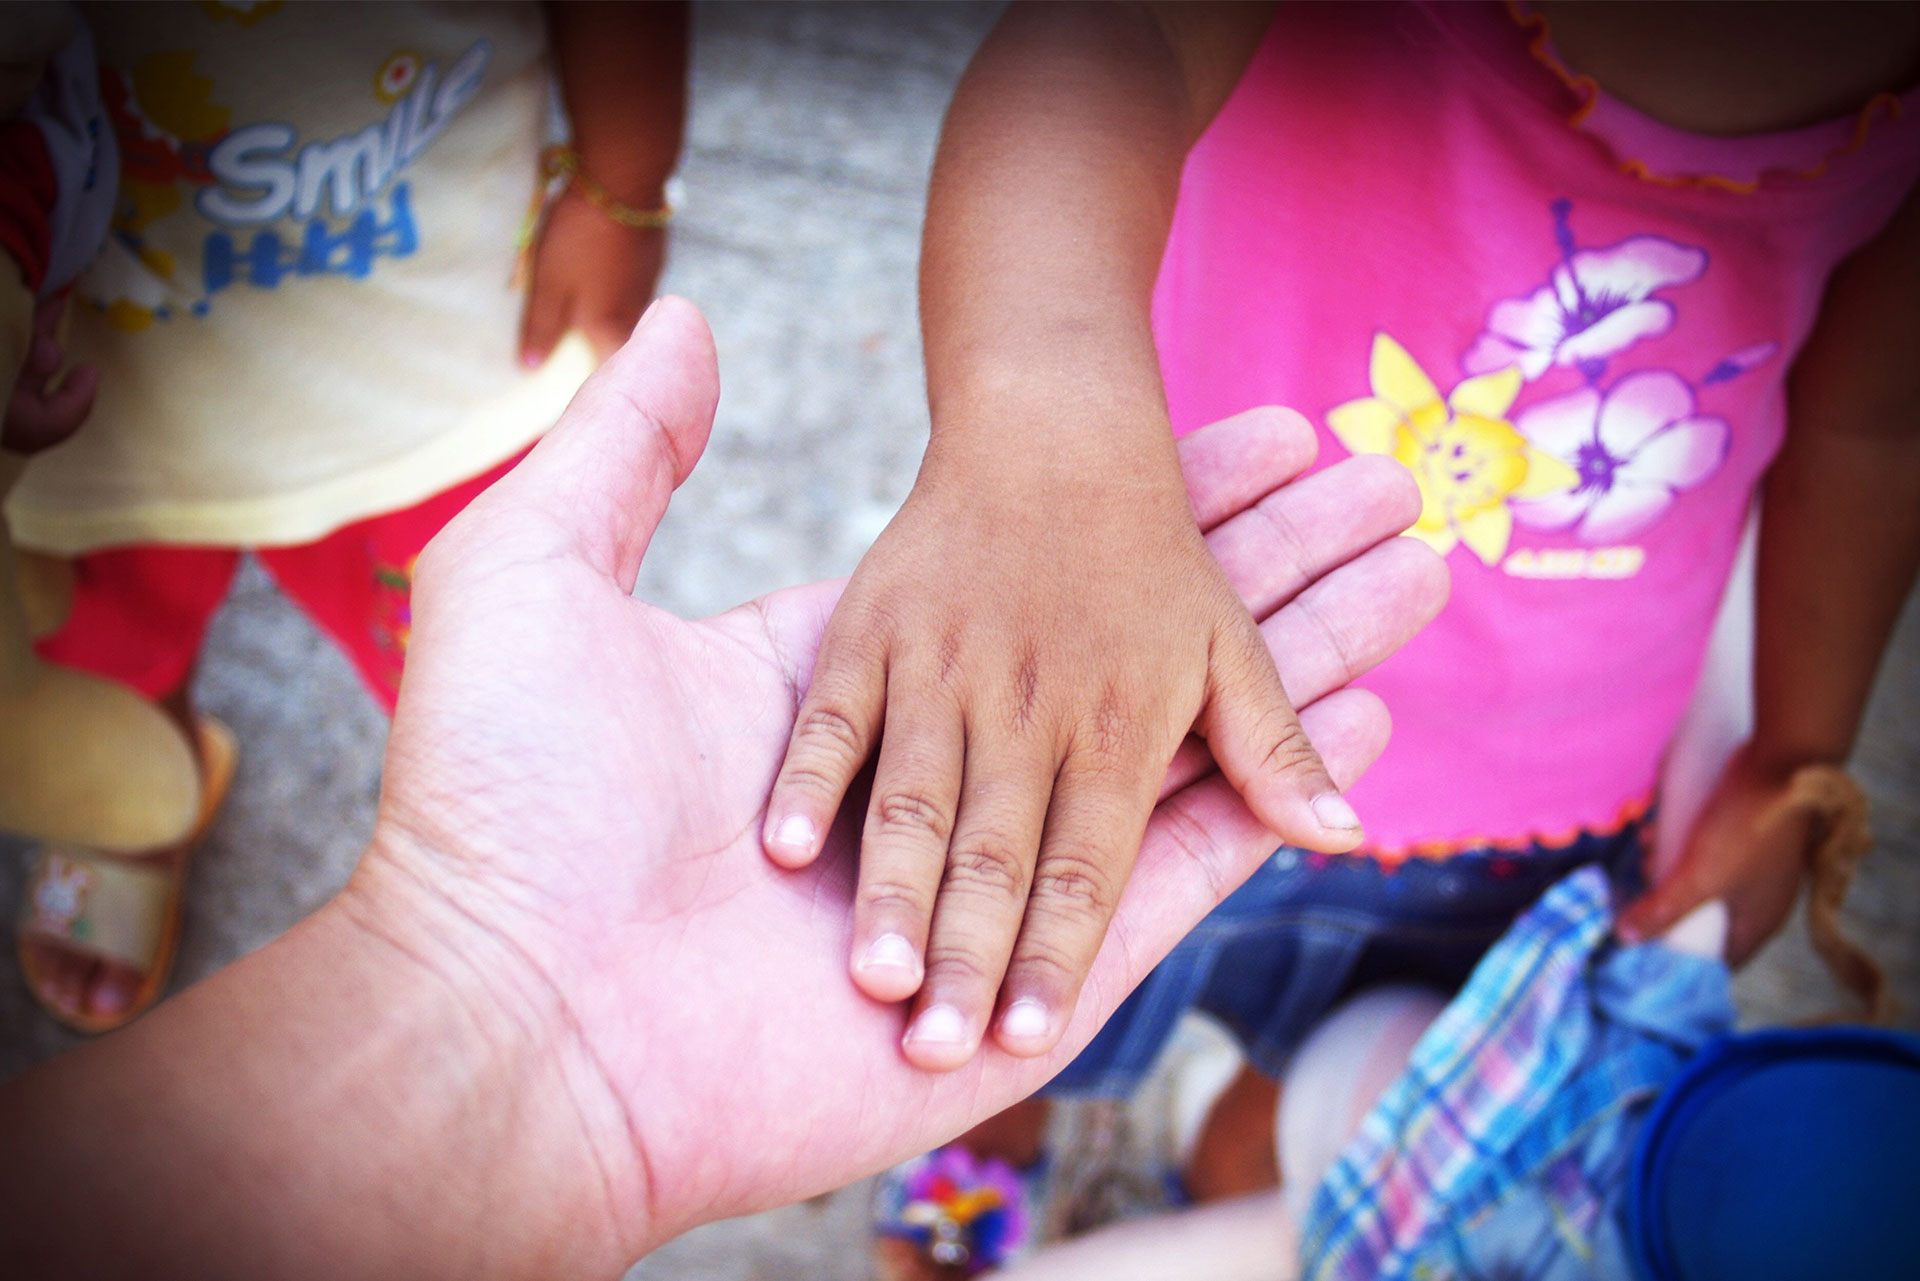 Child Care is the best social work. Preparing children academically, while enabling parents to work outside the home.